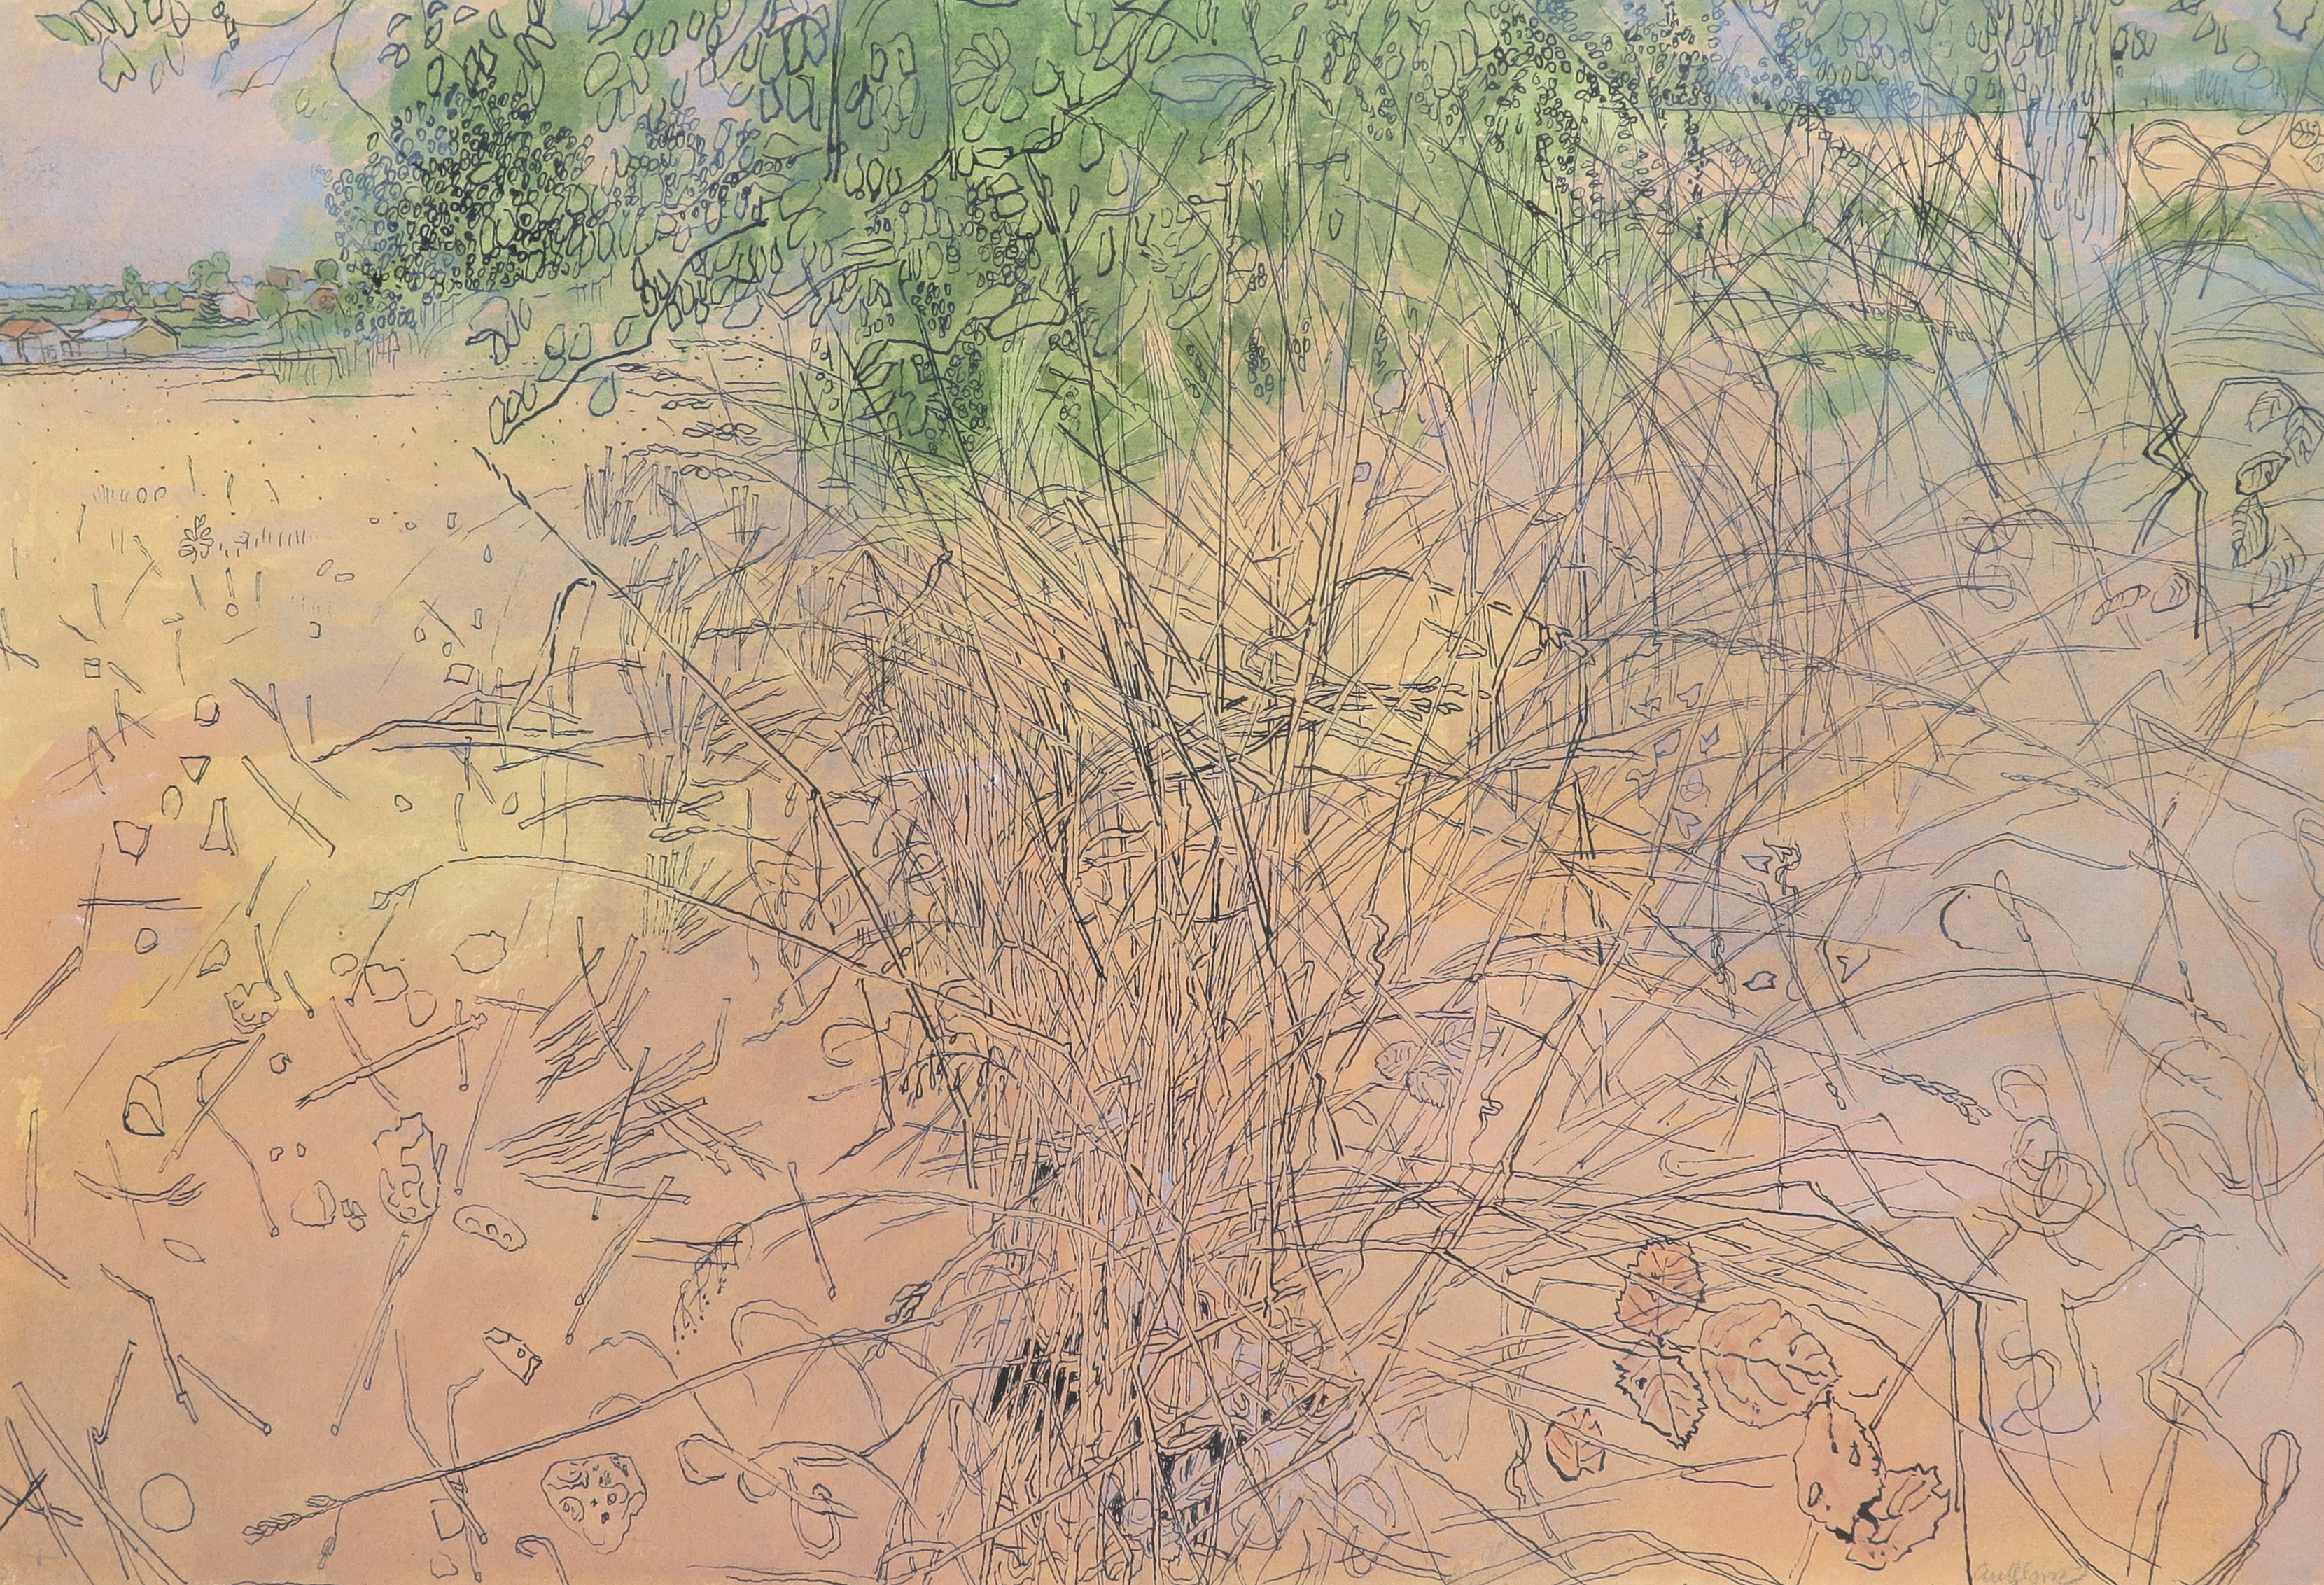 ‡Anthony Gross CBE, RA (1905-1984) The thicket Signed anyGross (lower right) Watercolour and pen and